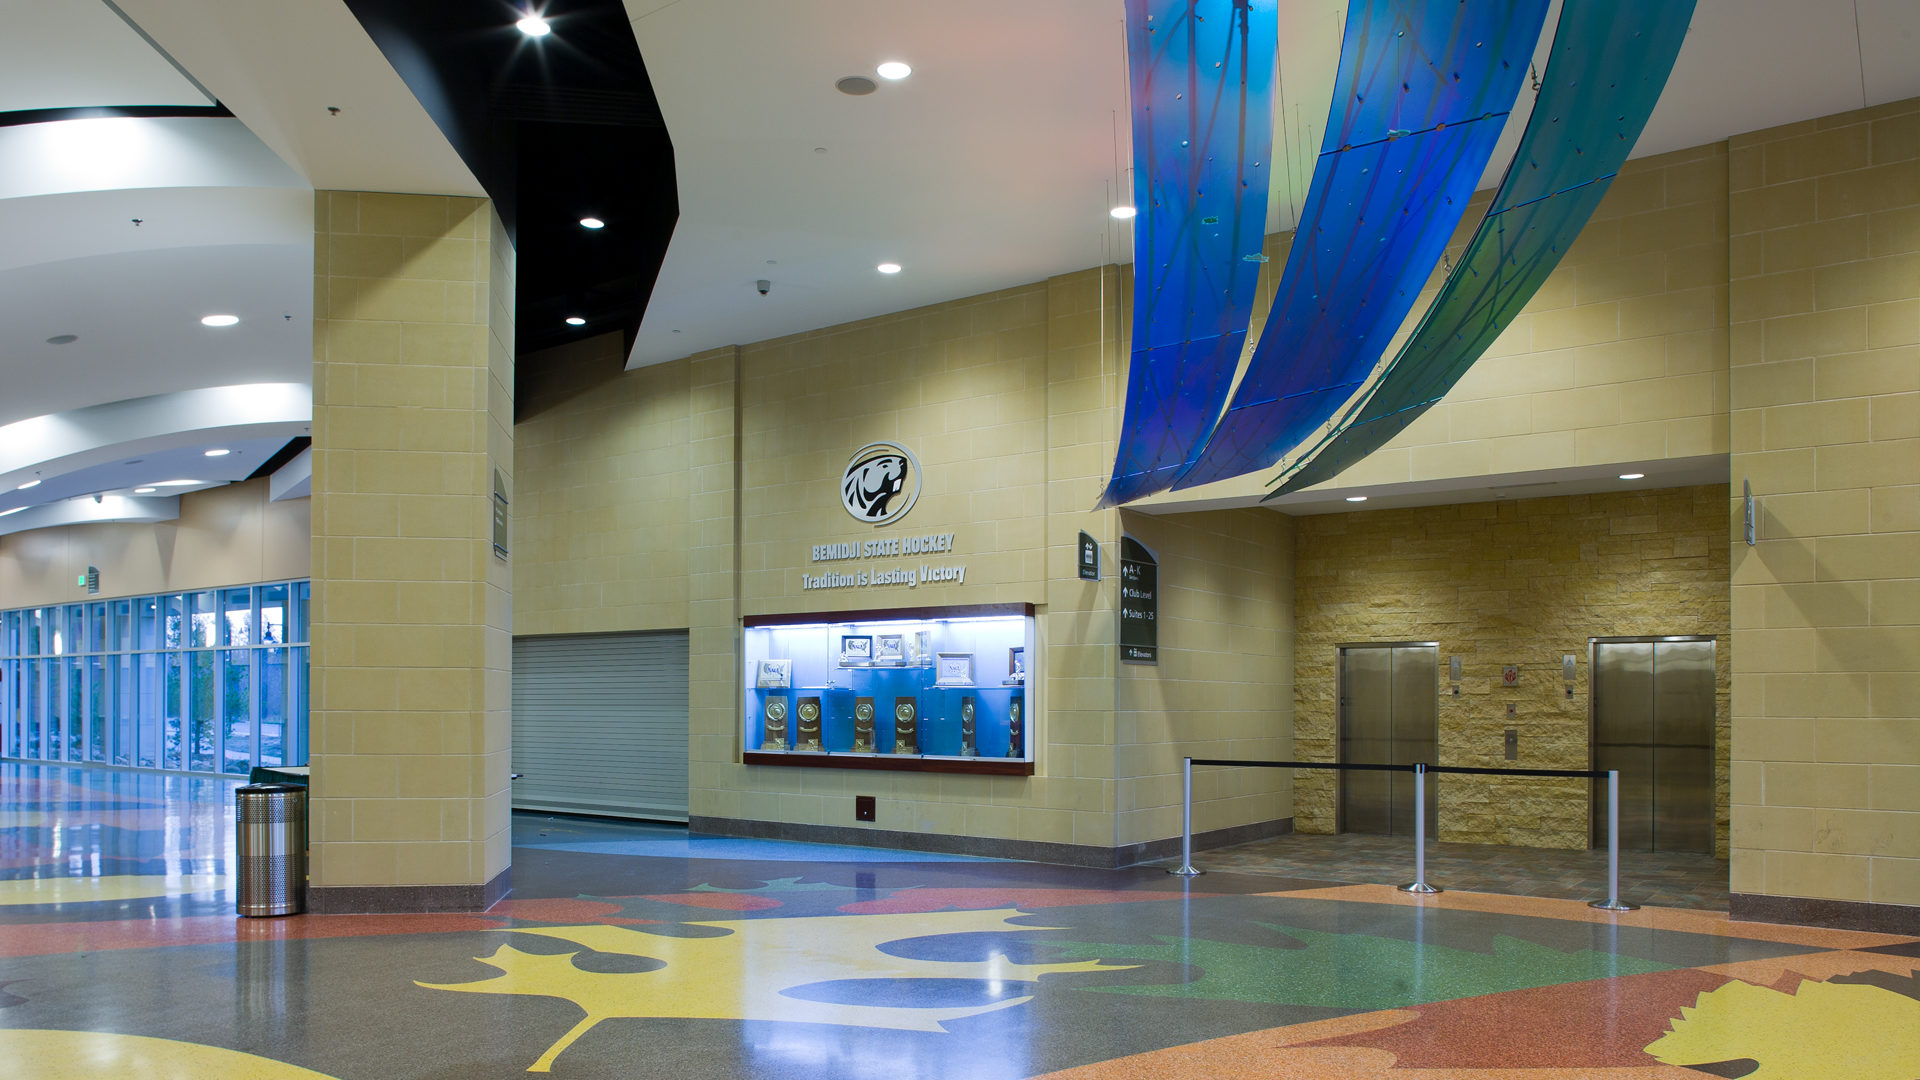 Sanford Center Ice Arena Bemidji MN Government Interior Cooridor of Entrance Hanging Wave Panels from Ceiling